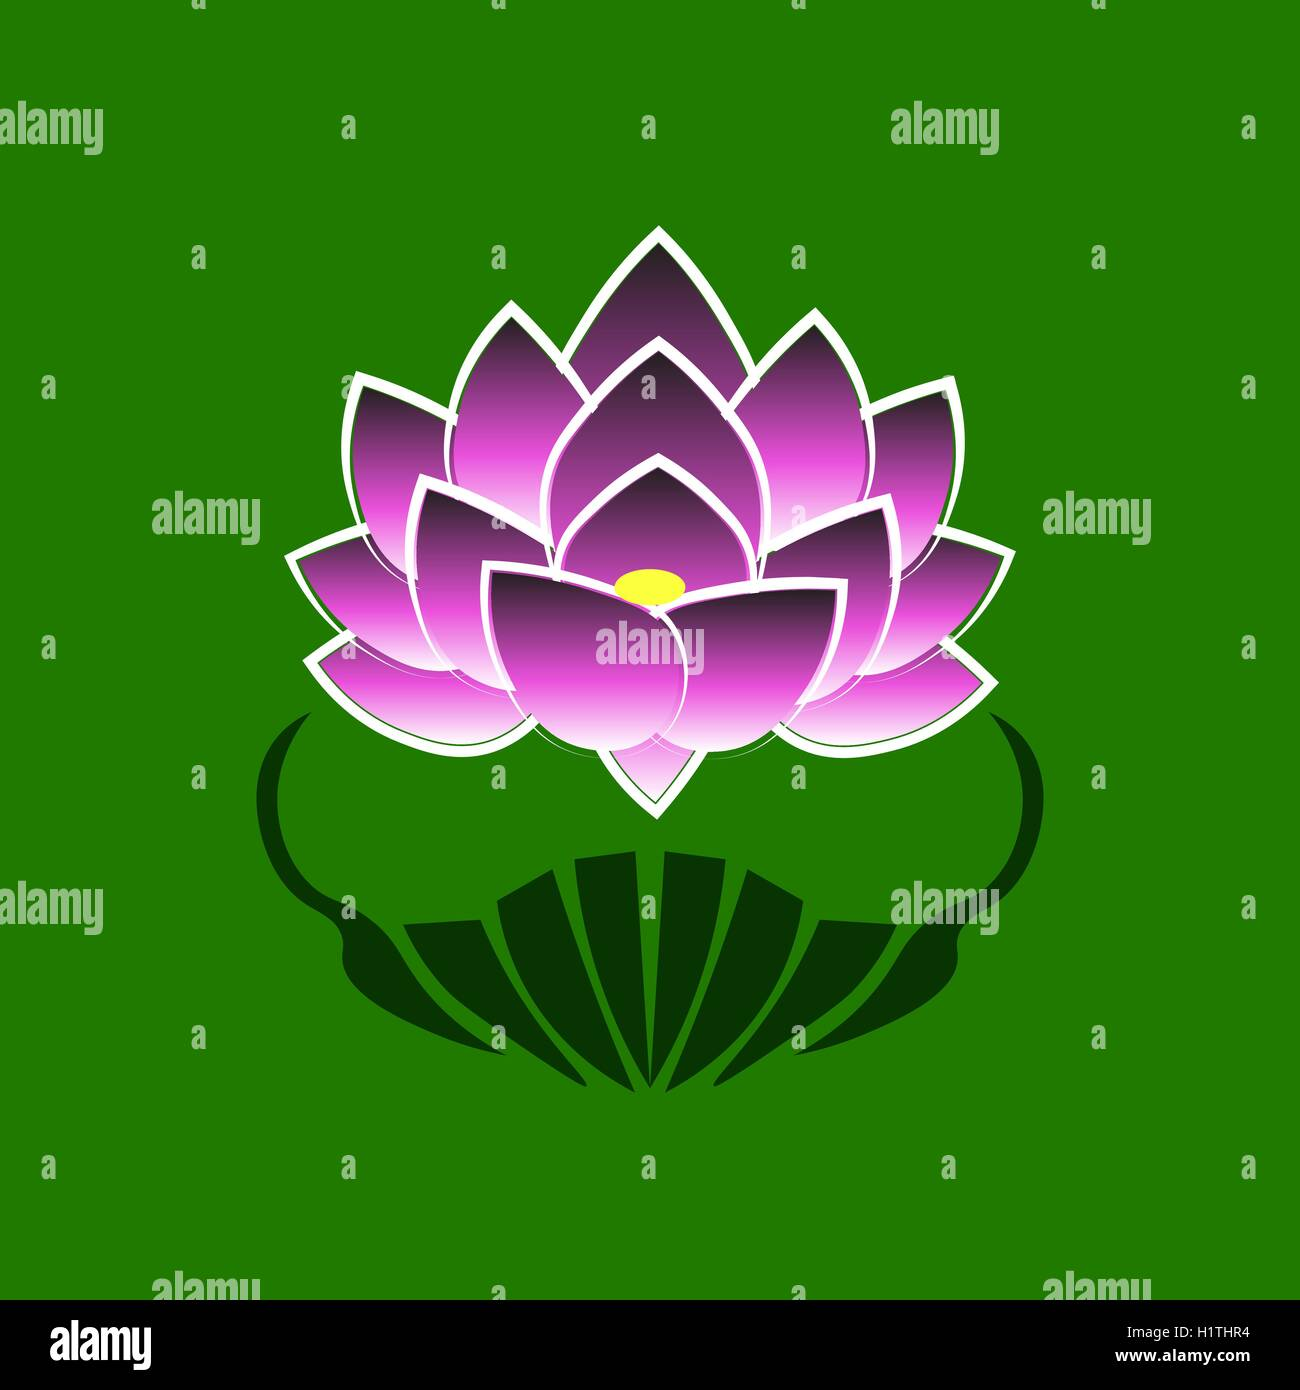 Purple Stylized Image Of A Lotus Flower On A Green Background The